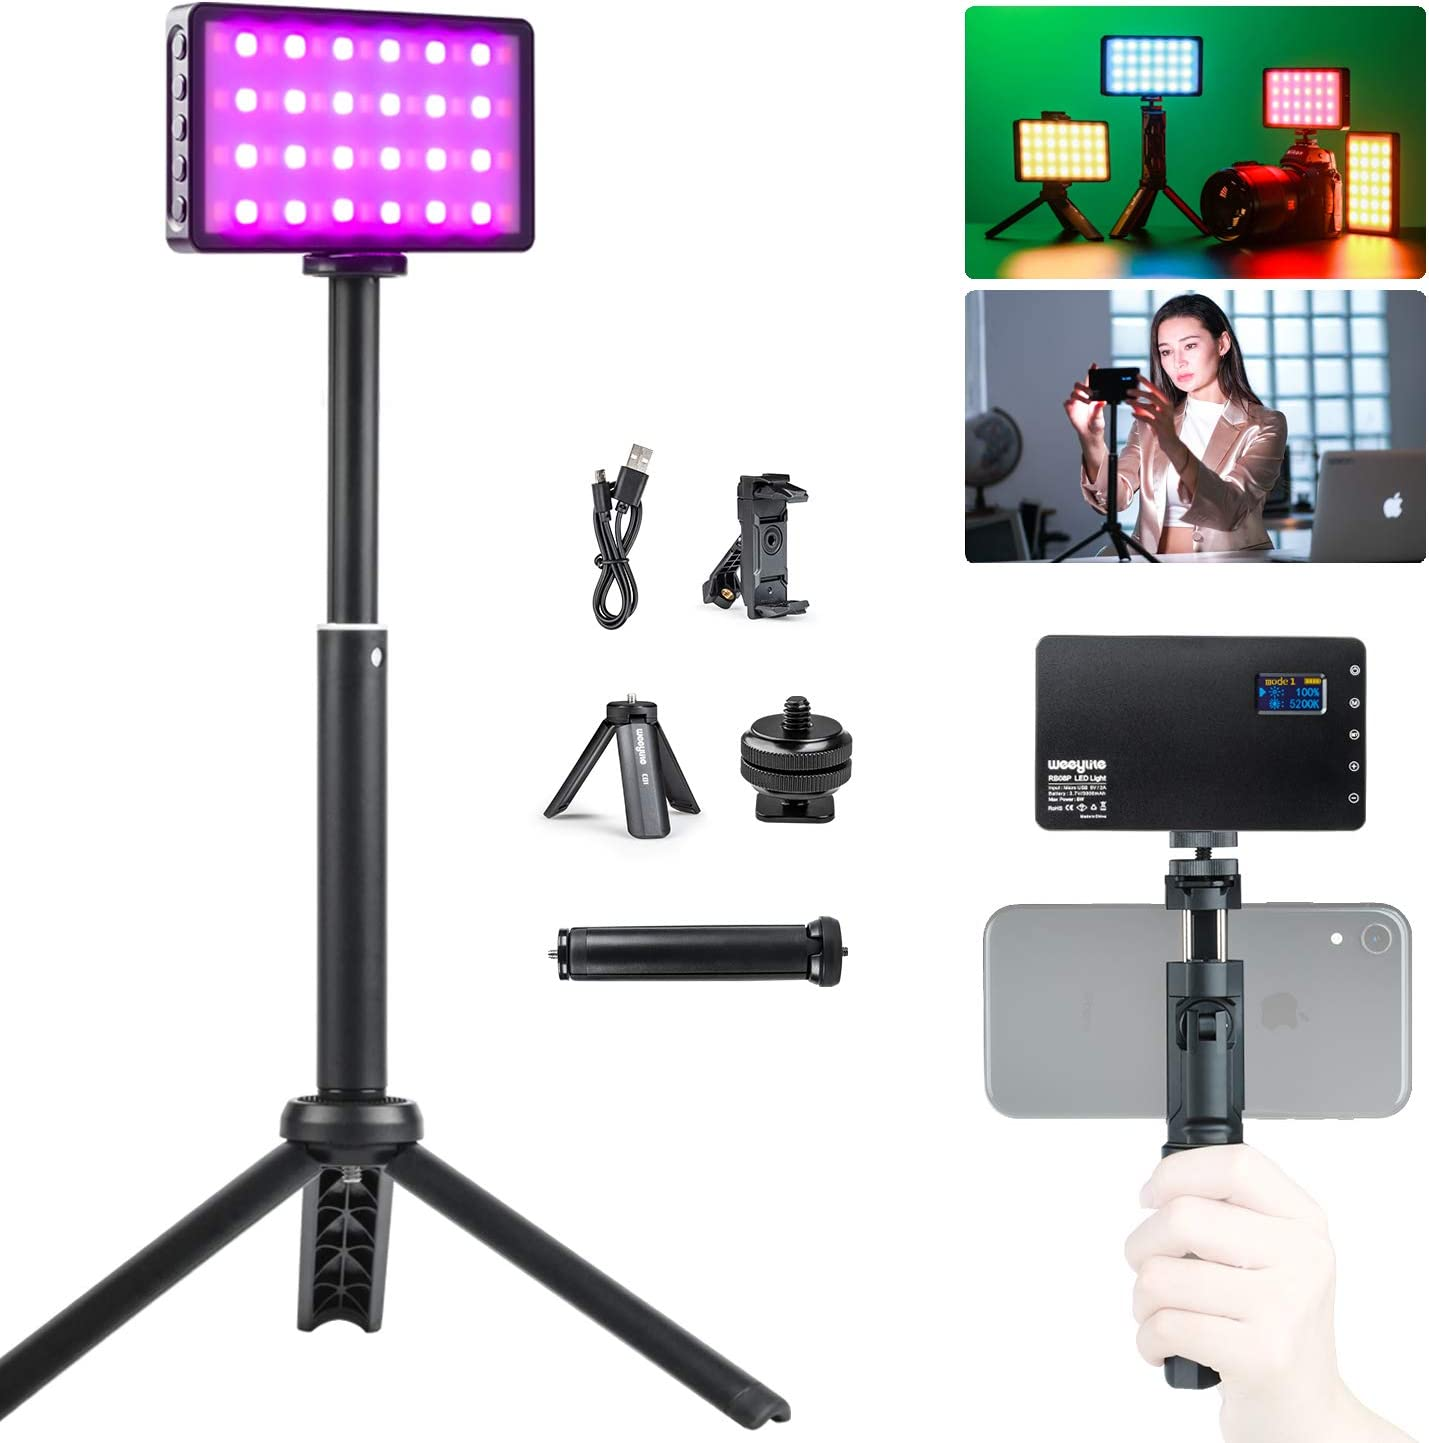 RGB LED Video Light, Portable Mini Built-in Rechargeable Battery LED On Camera Light for Photography Camcorder Shooting with Dimmable 2500-8500K 360° Full Color 20 Light Effects Aluminum Alloy Shell